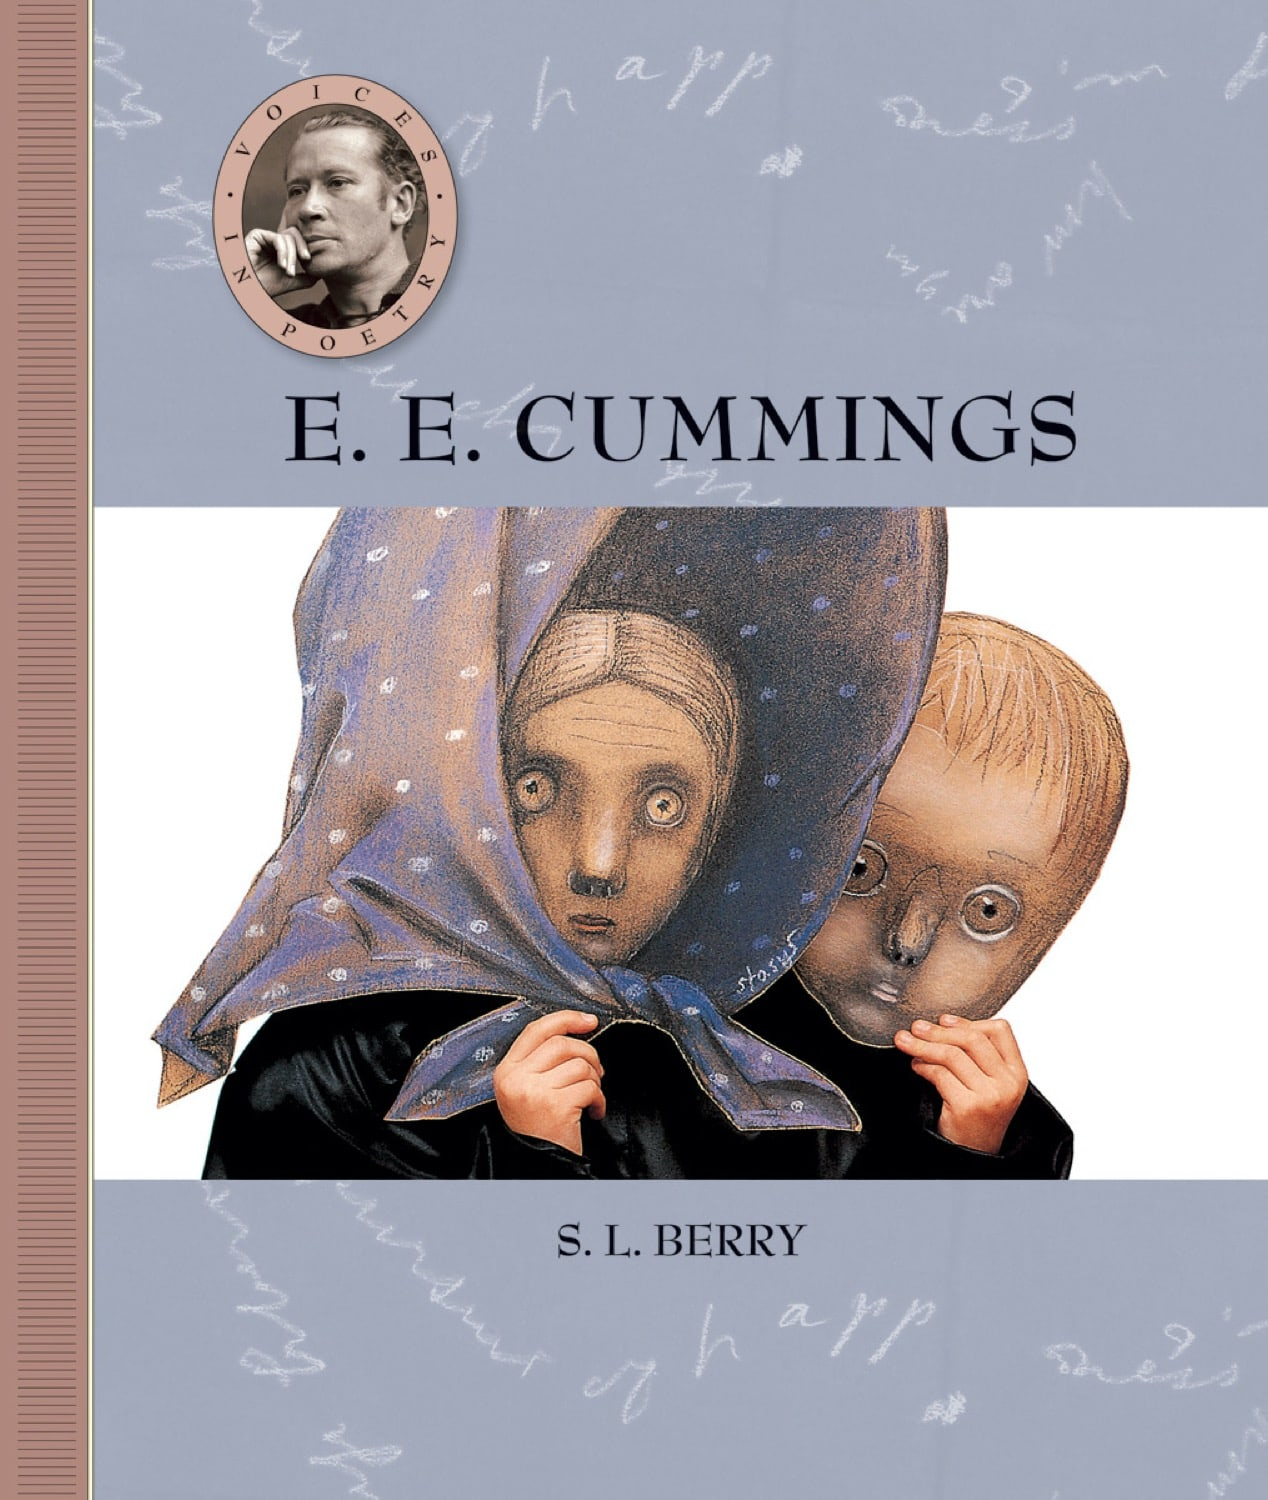 Voices in Poetry: E. E. Cummings